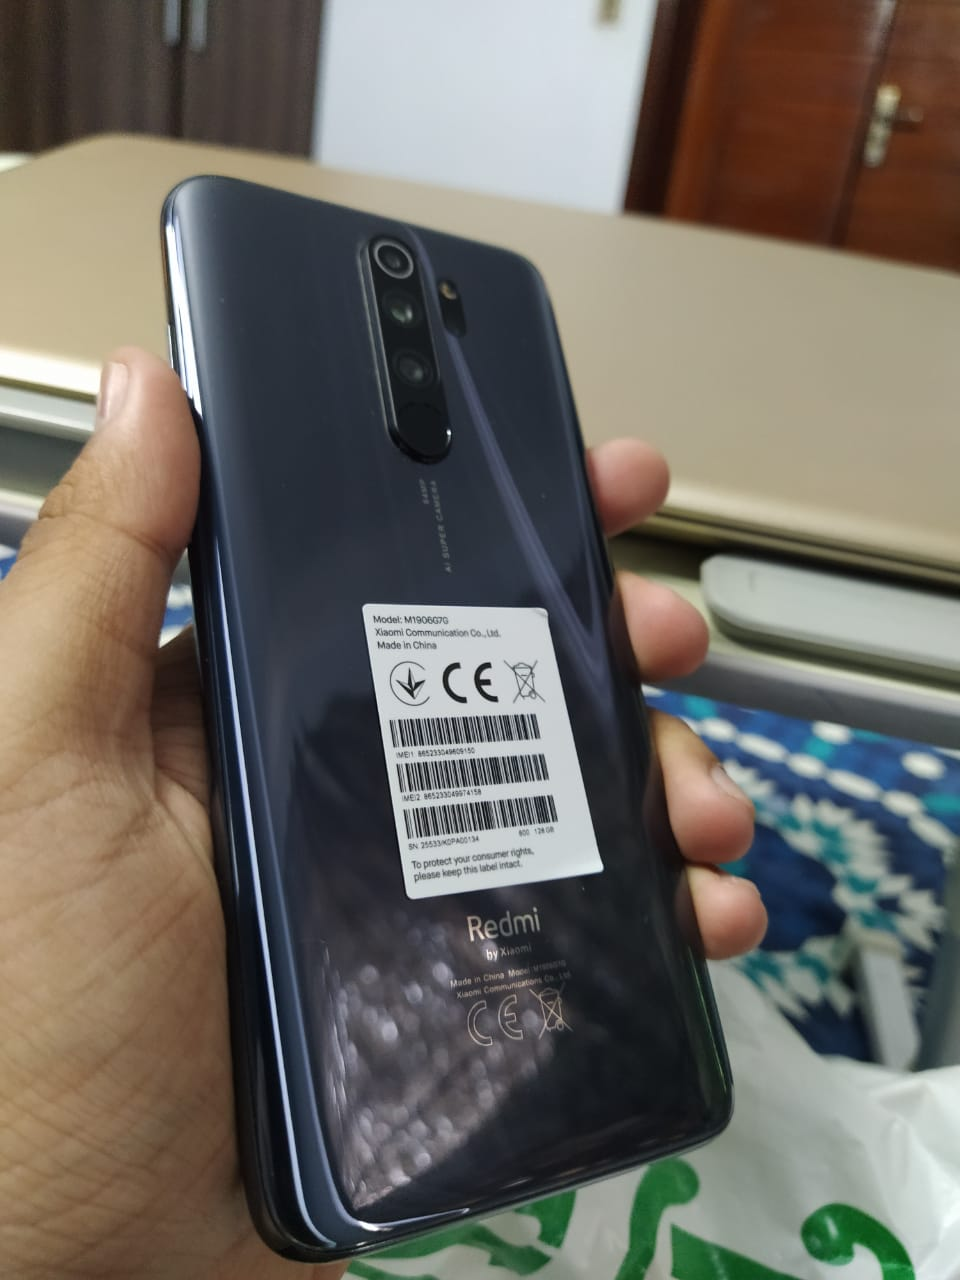 REDMI Note 8 pro 10/10 - Used Mobile Phone for sale in Punjab